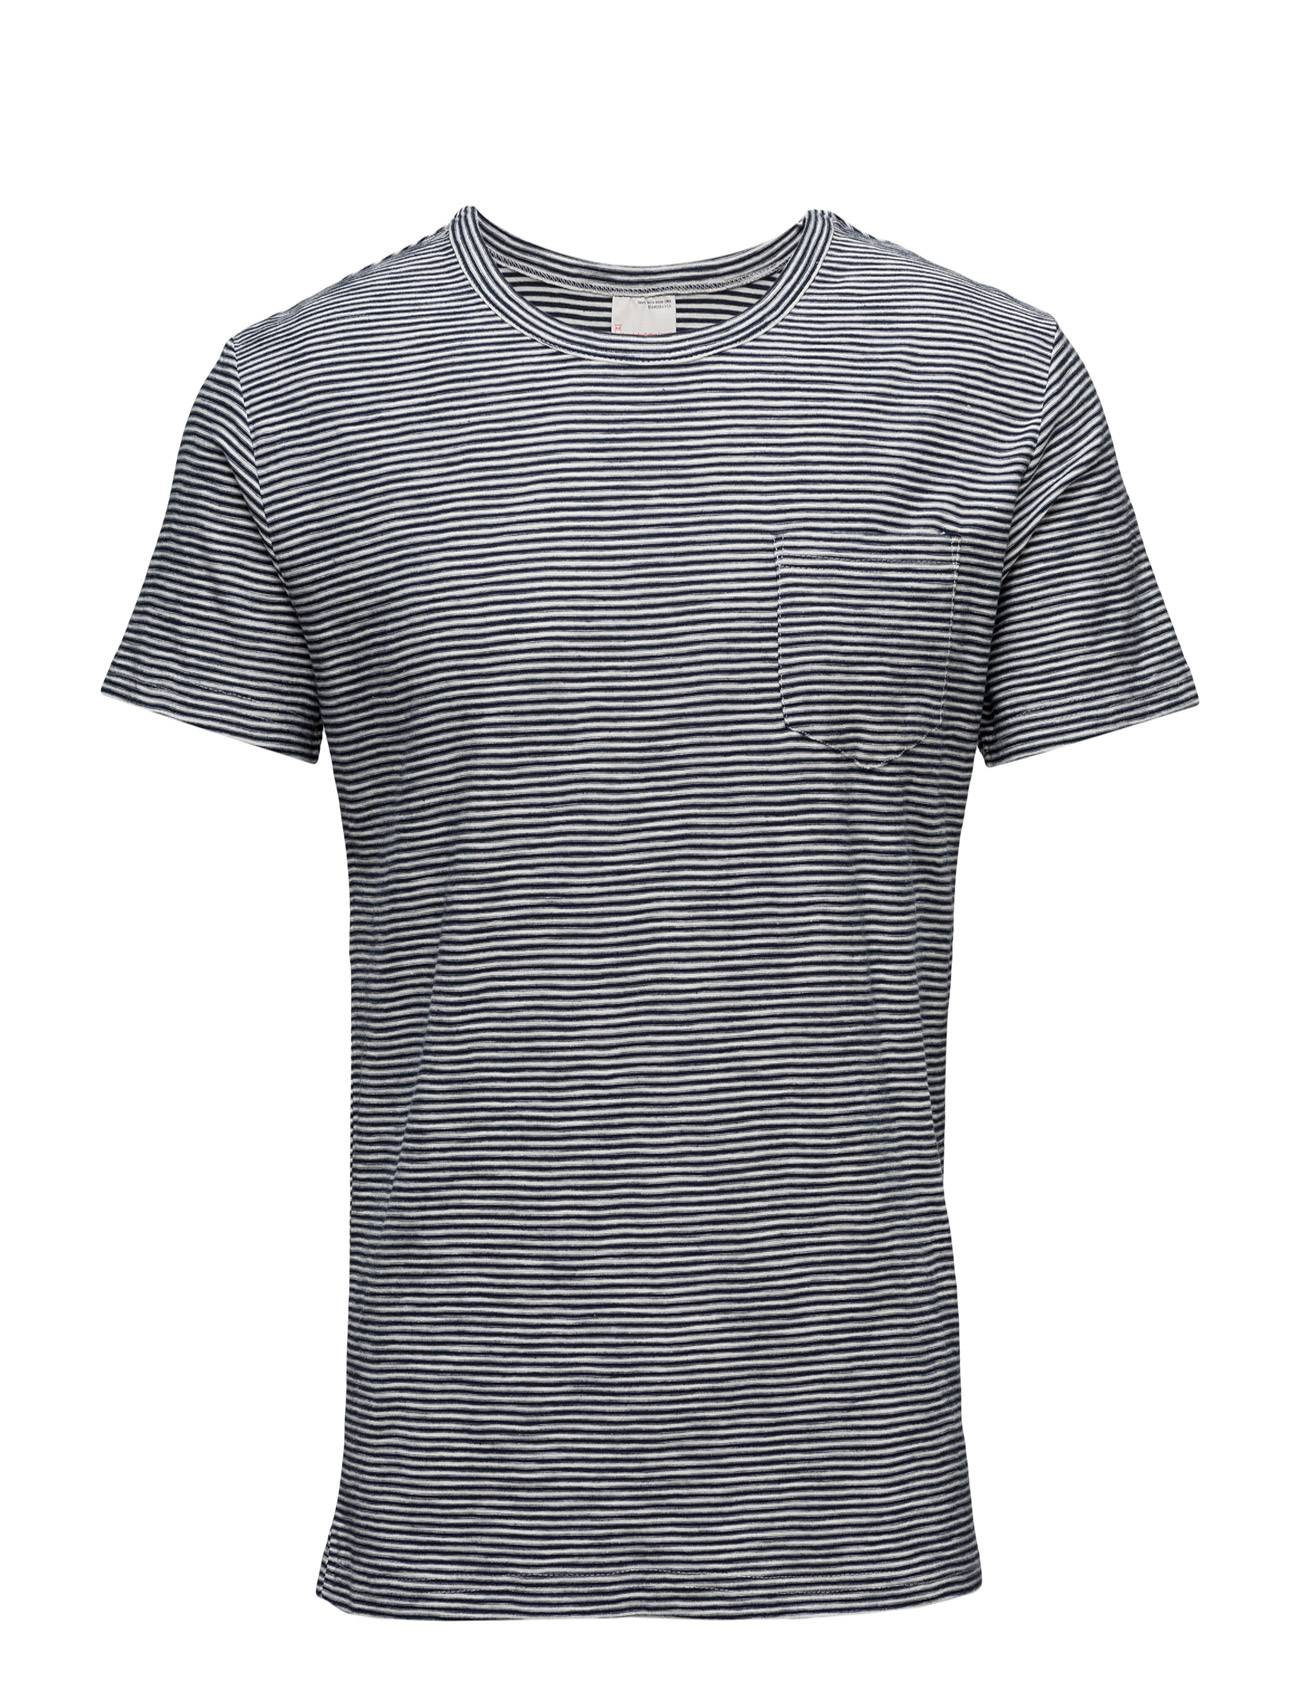 Knowledge Cotton Apparel Reverse Striped Tee - Gots